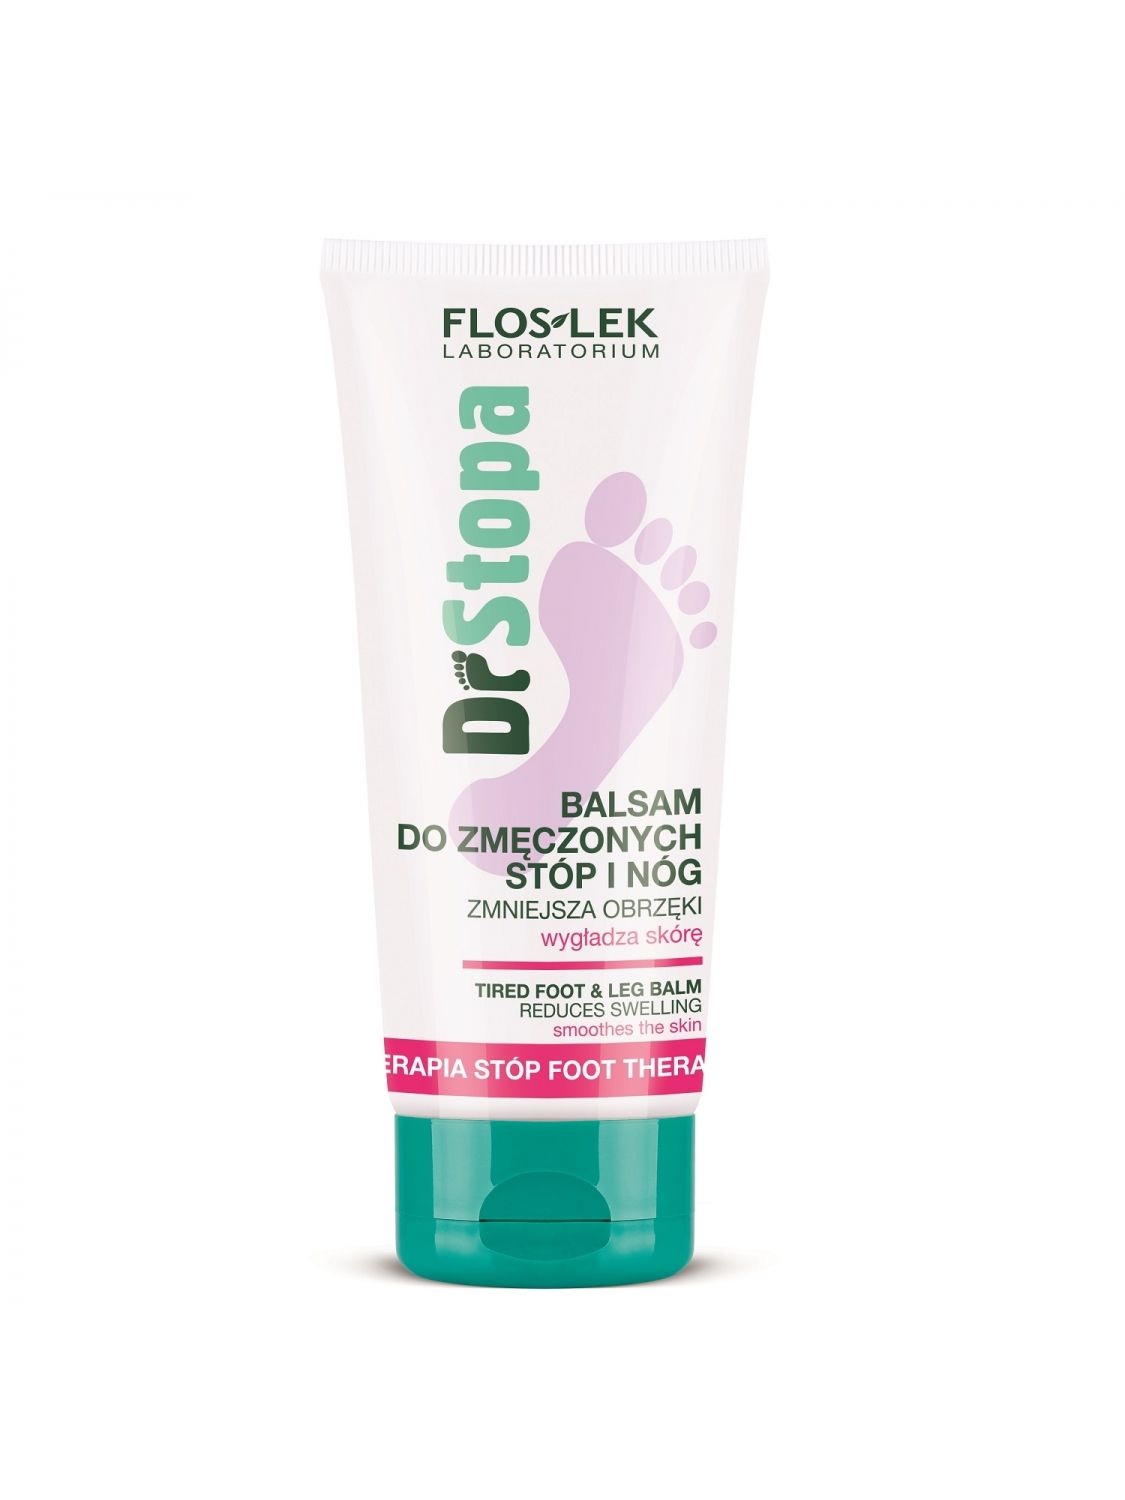 DR STOPA FOOT THERAPY Tired foot & leg balm - 100 ml - Floslek